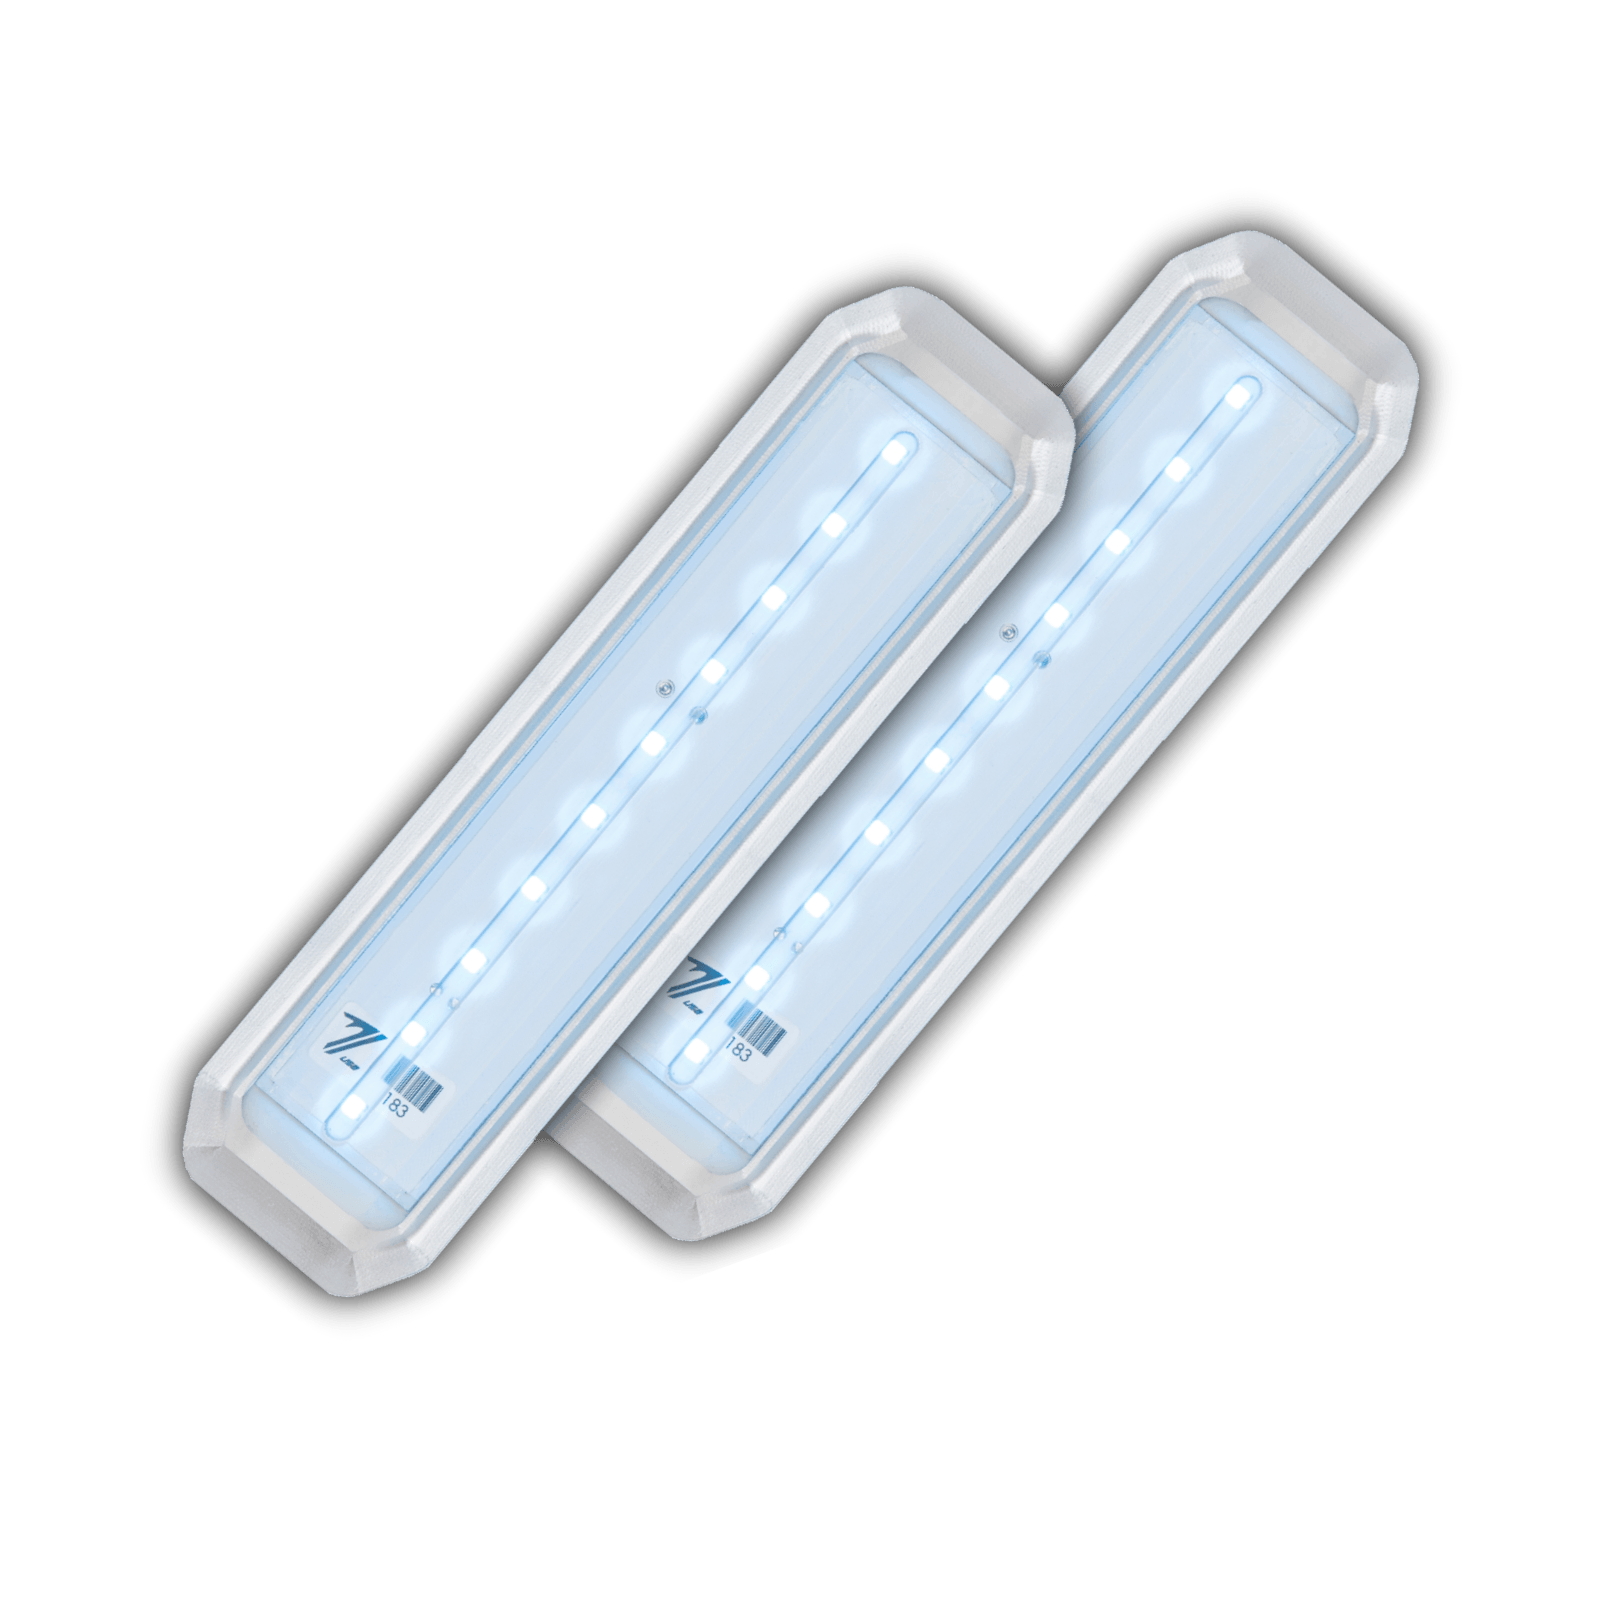 MIU-L10 2Pack Underwater LED